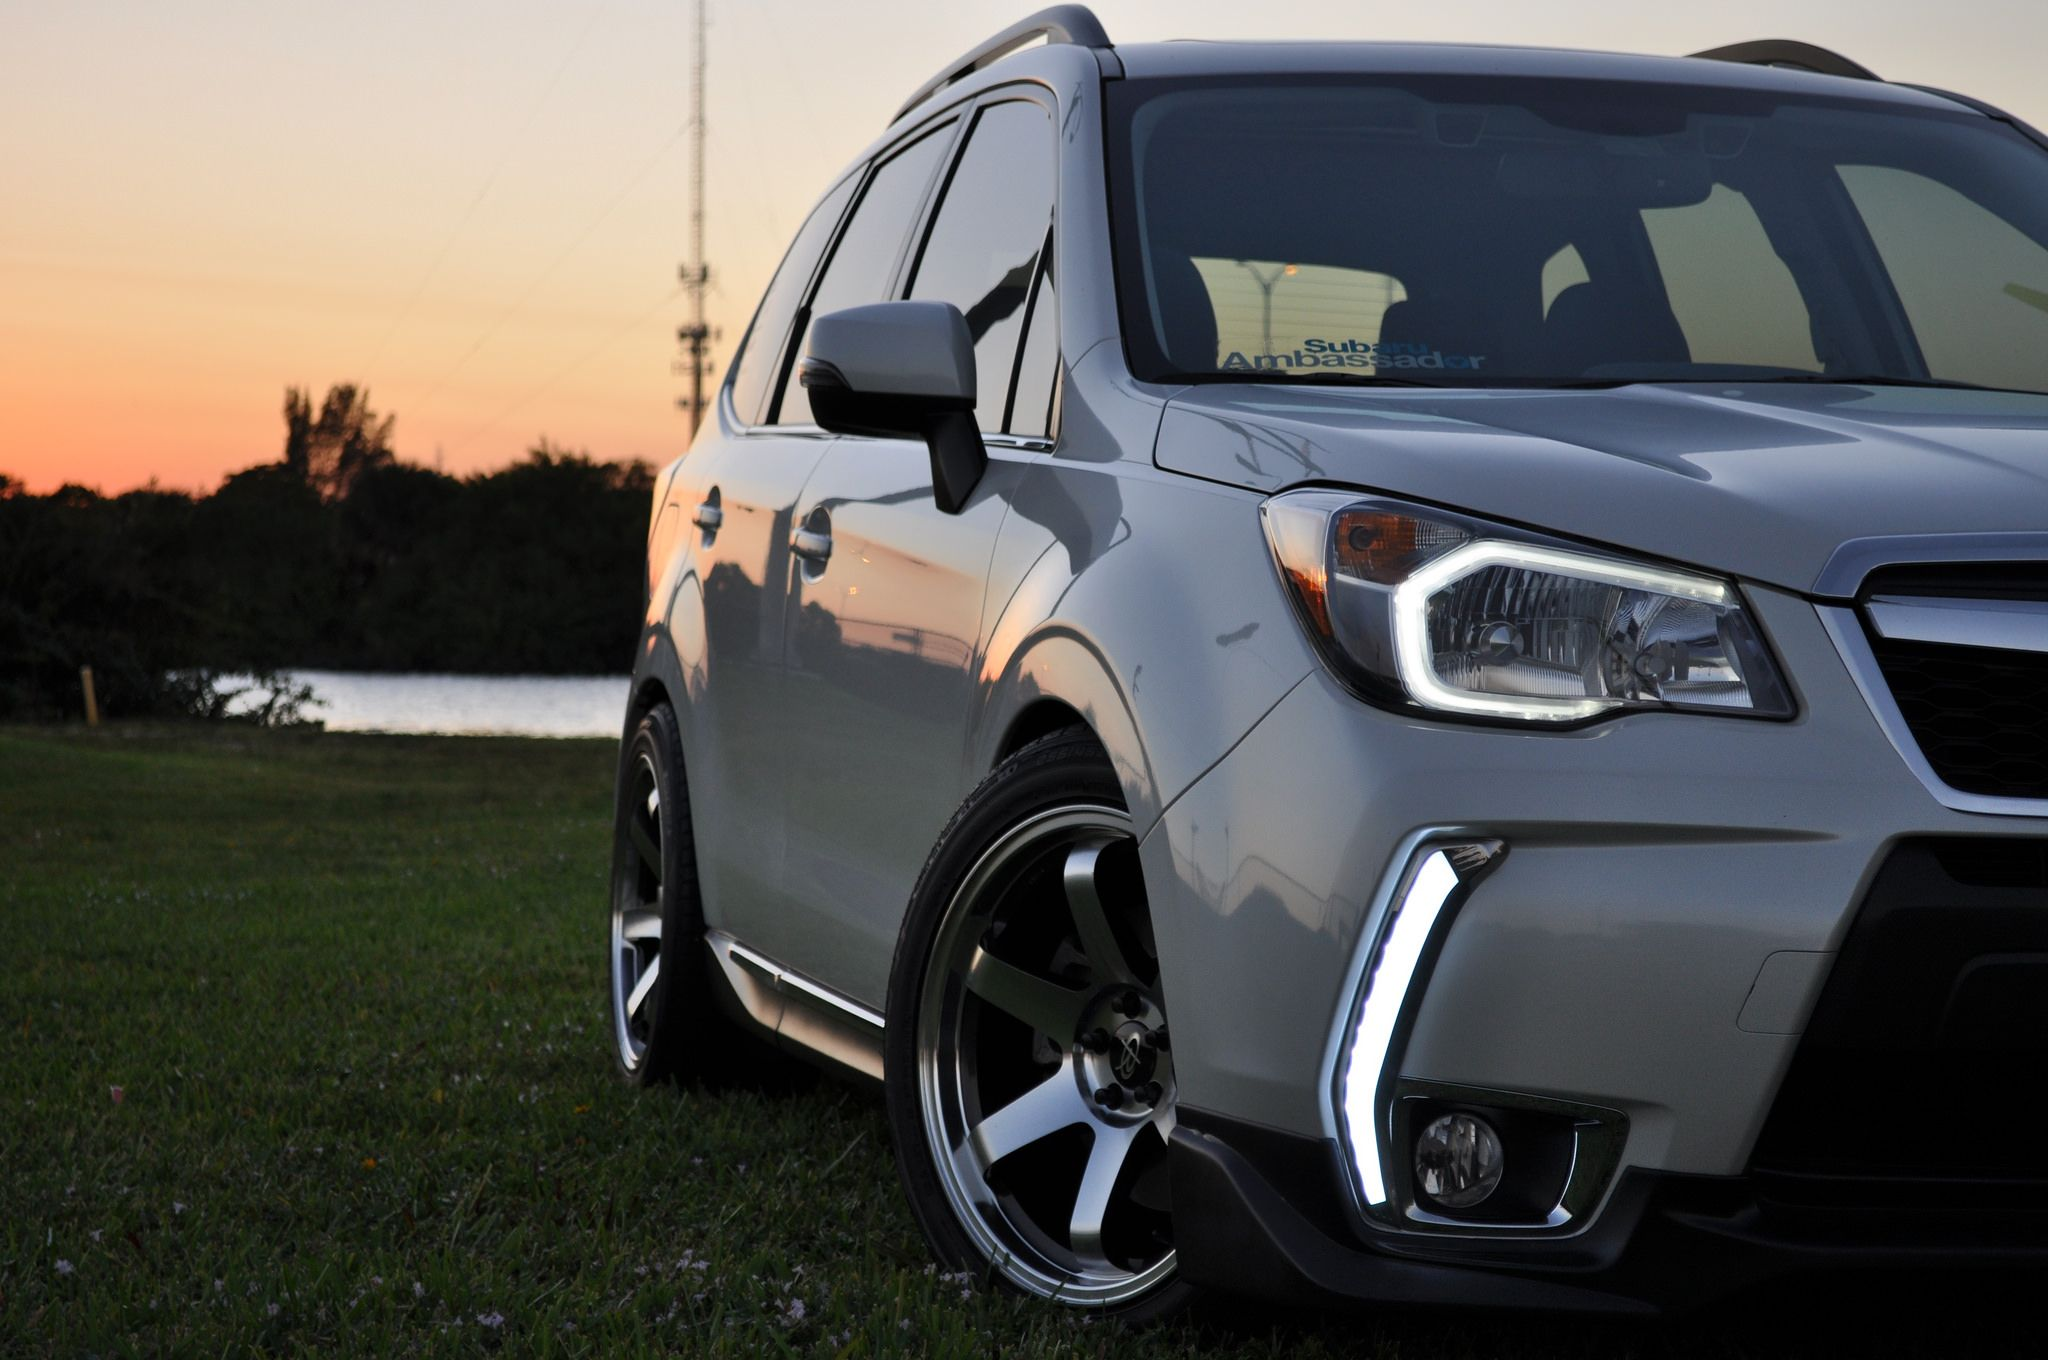 Best 25 subaru forester 2016 ideas only on pinterest subaru forester 2016 forester xt and subaru forester xt